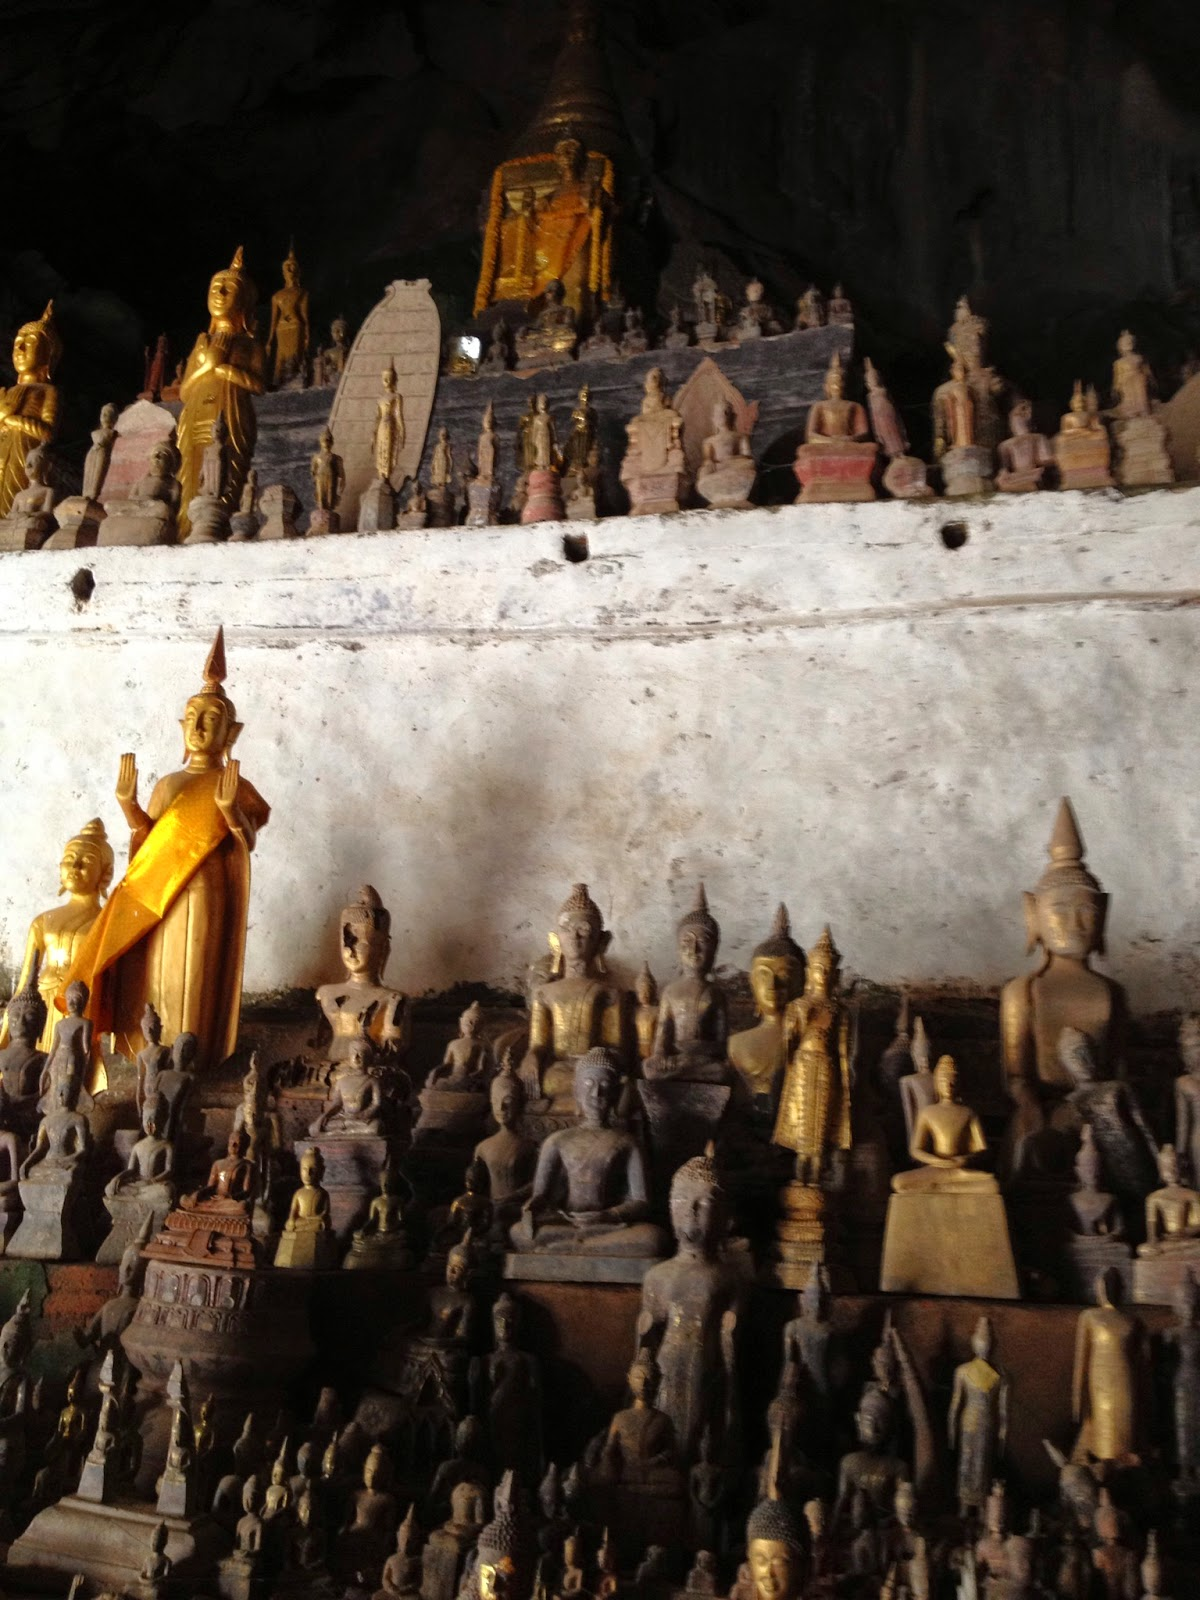 Luang Prabang - The first cave housed hundreds of small buddhas